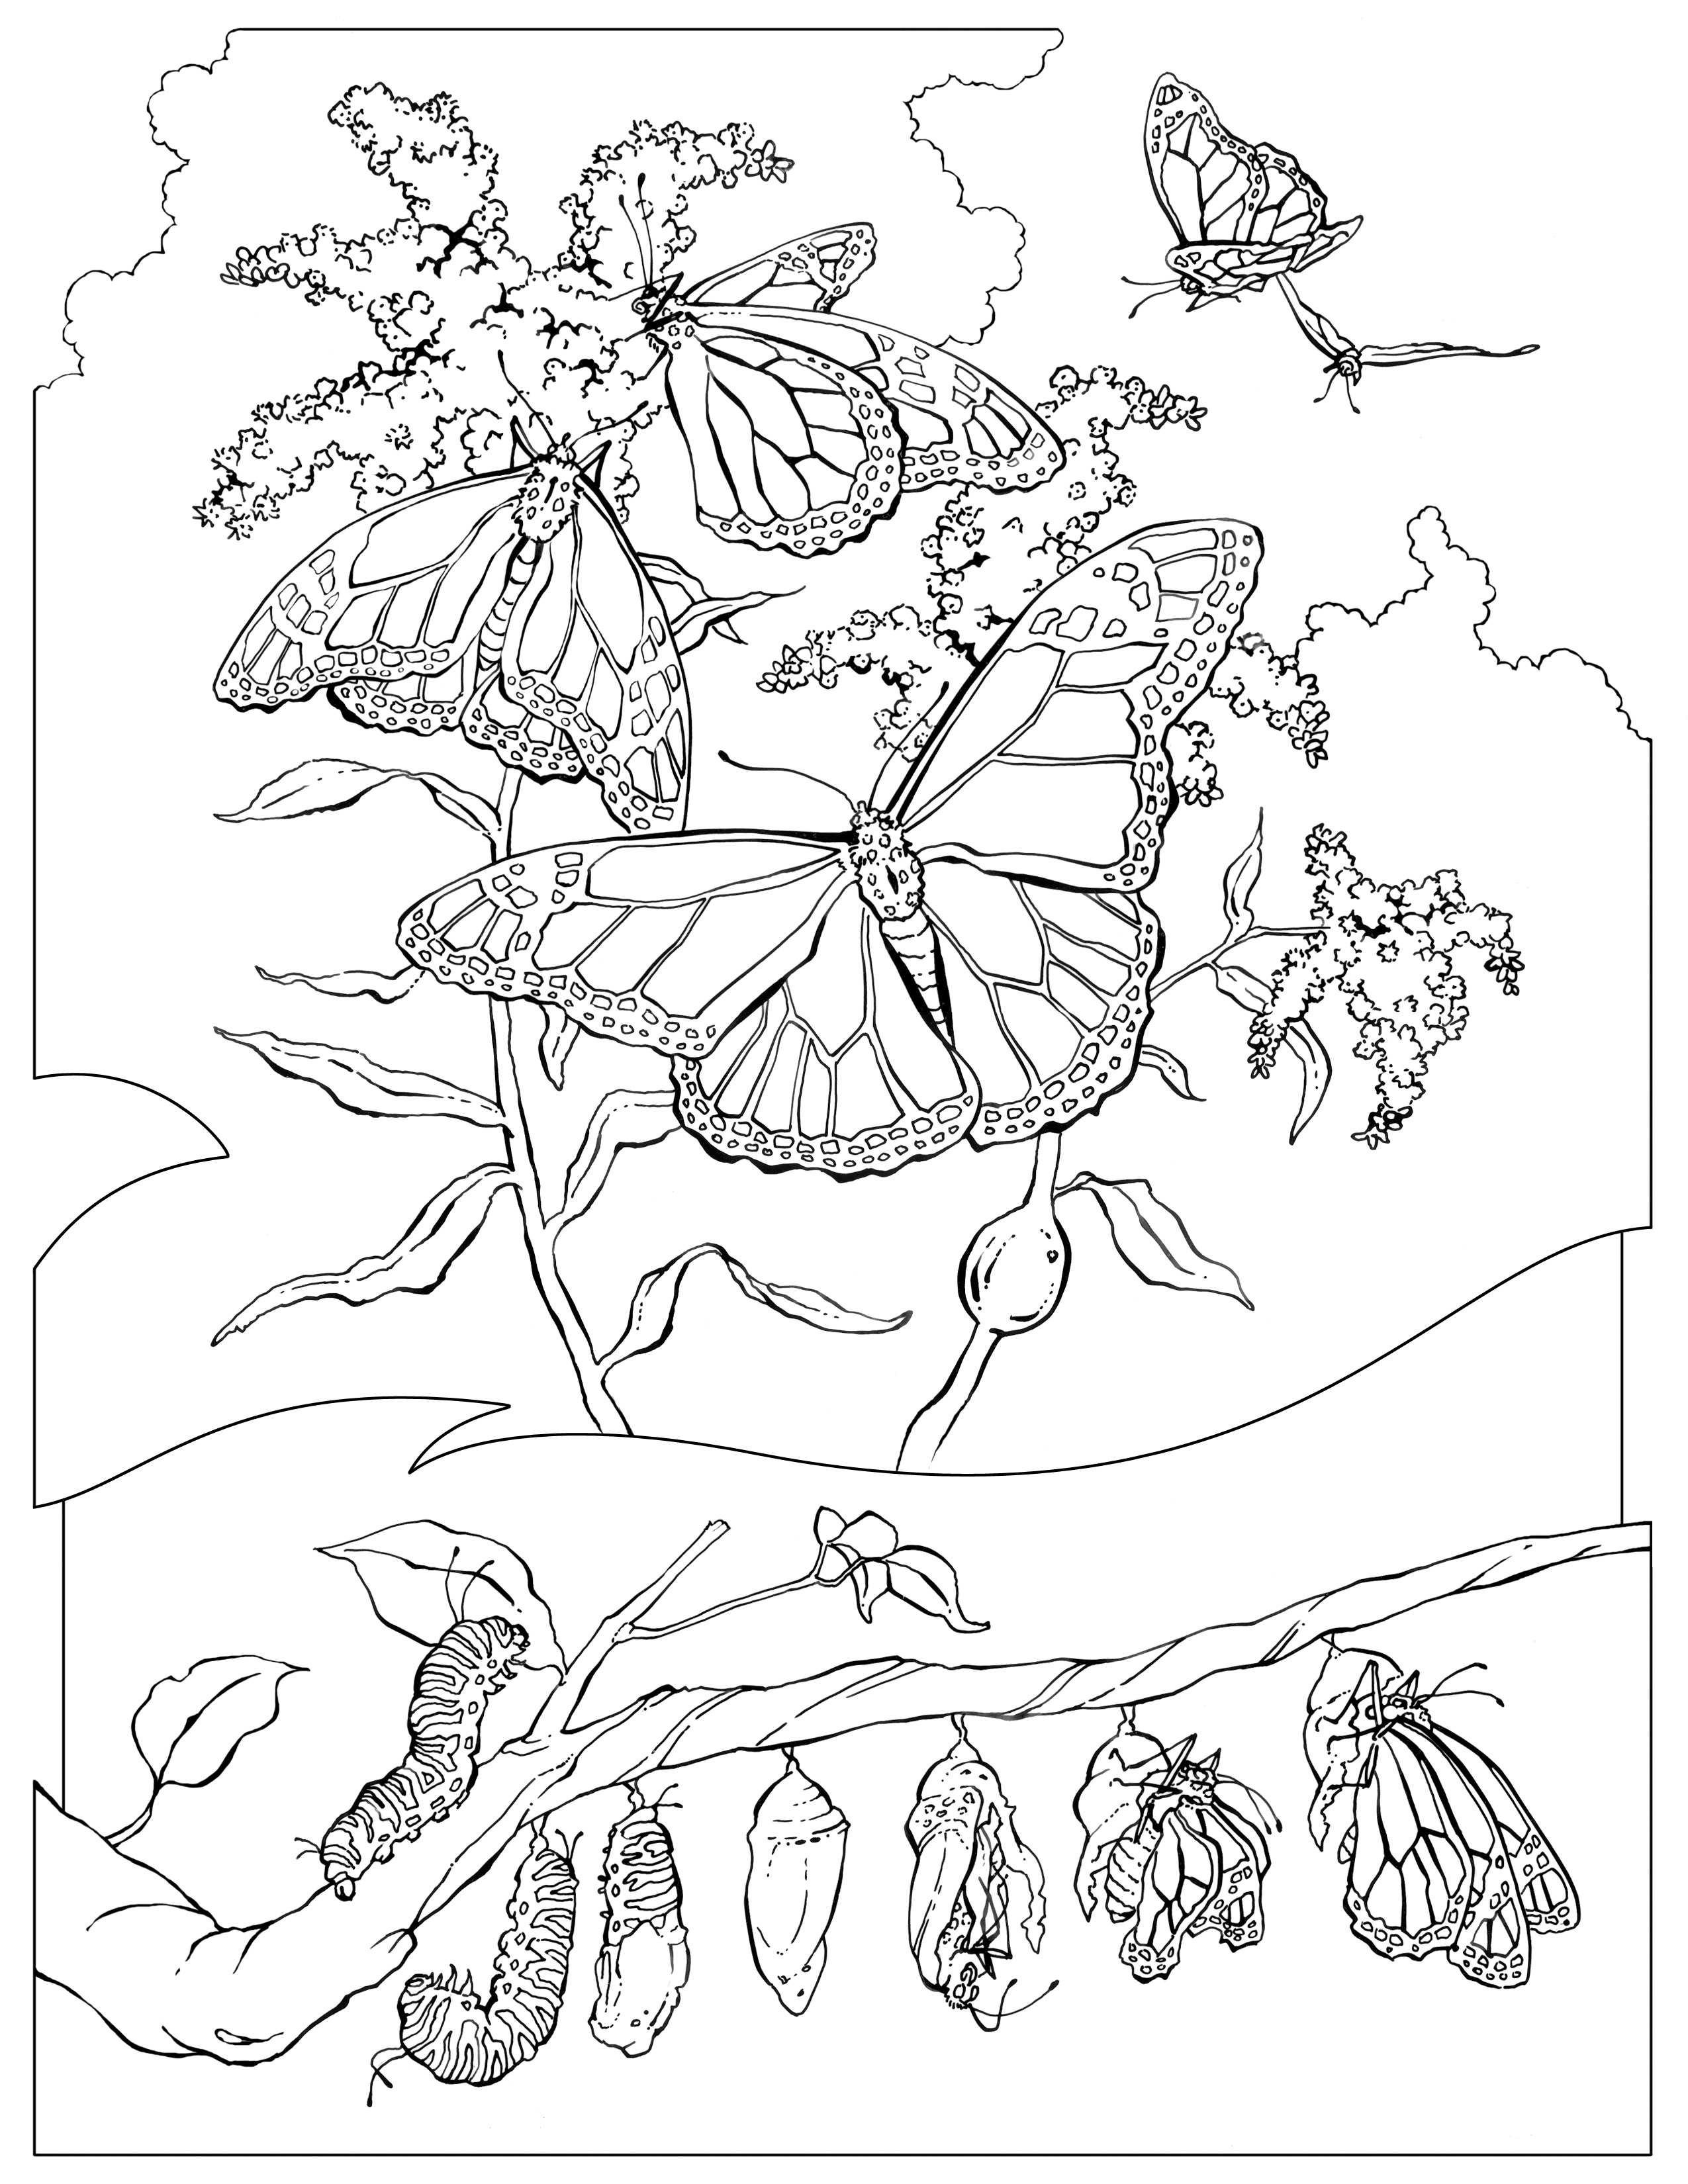 monarch butterfly coloring page monarch butterfly coloring pages all worksheets monarch coloring page butterfly